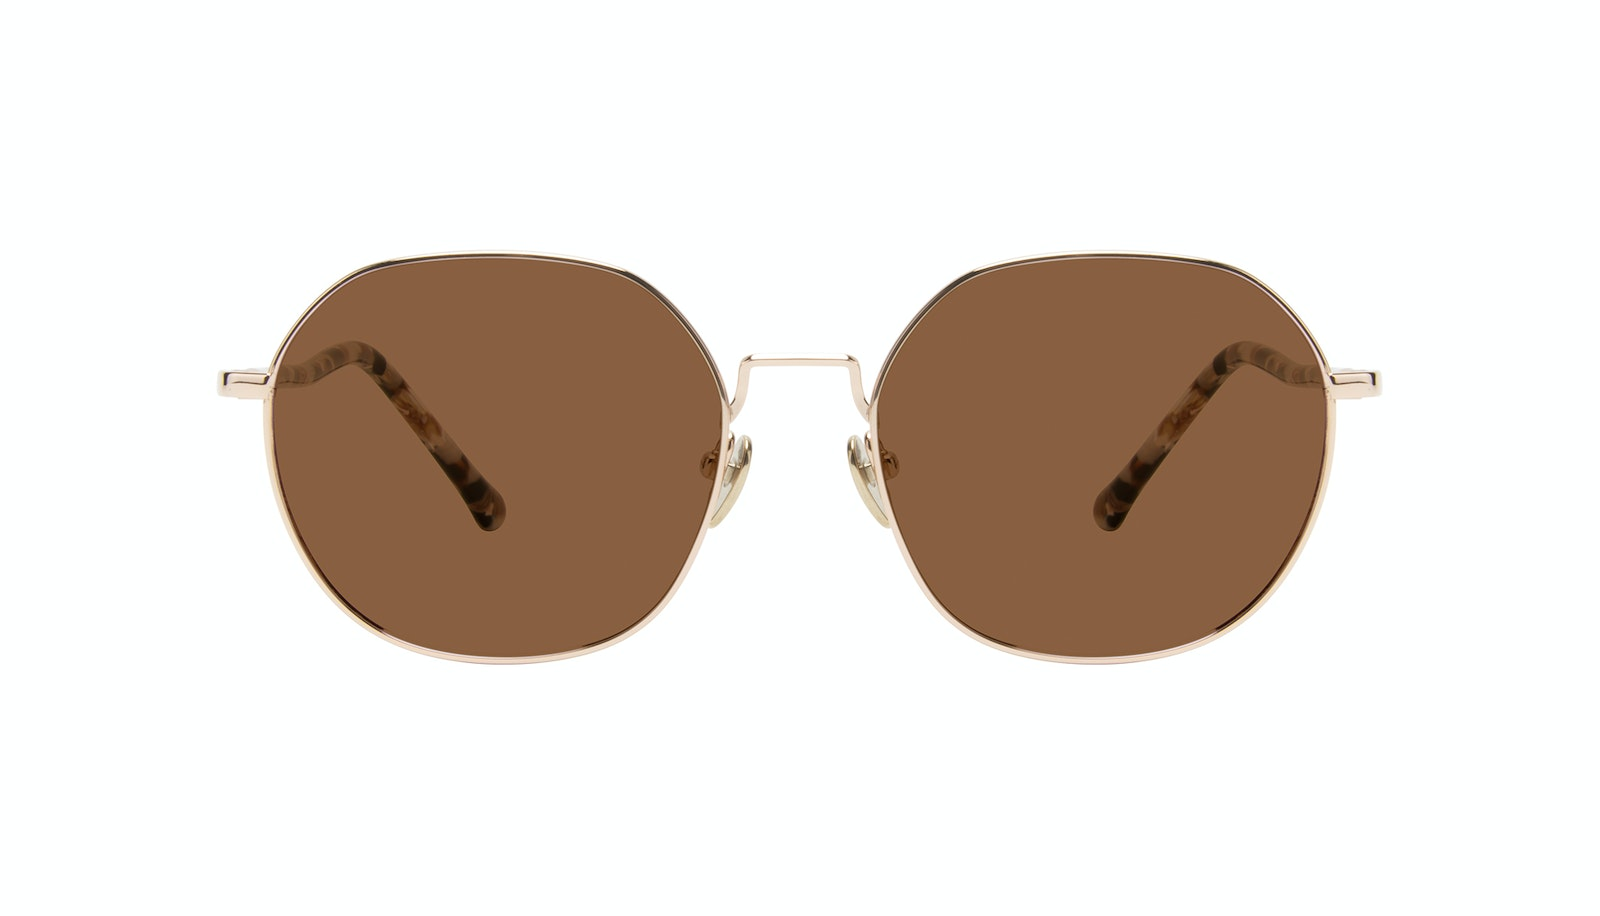 Affordable Fashion Glasses Round Sunglasses Women Coco Gold